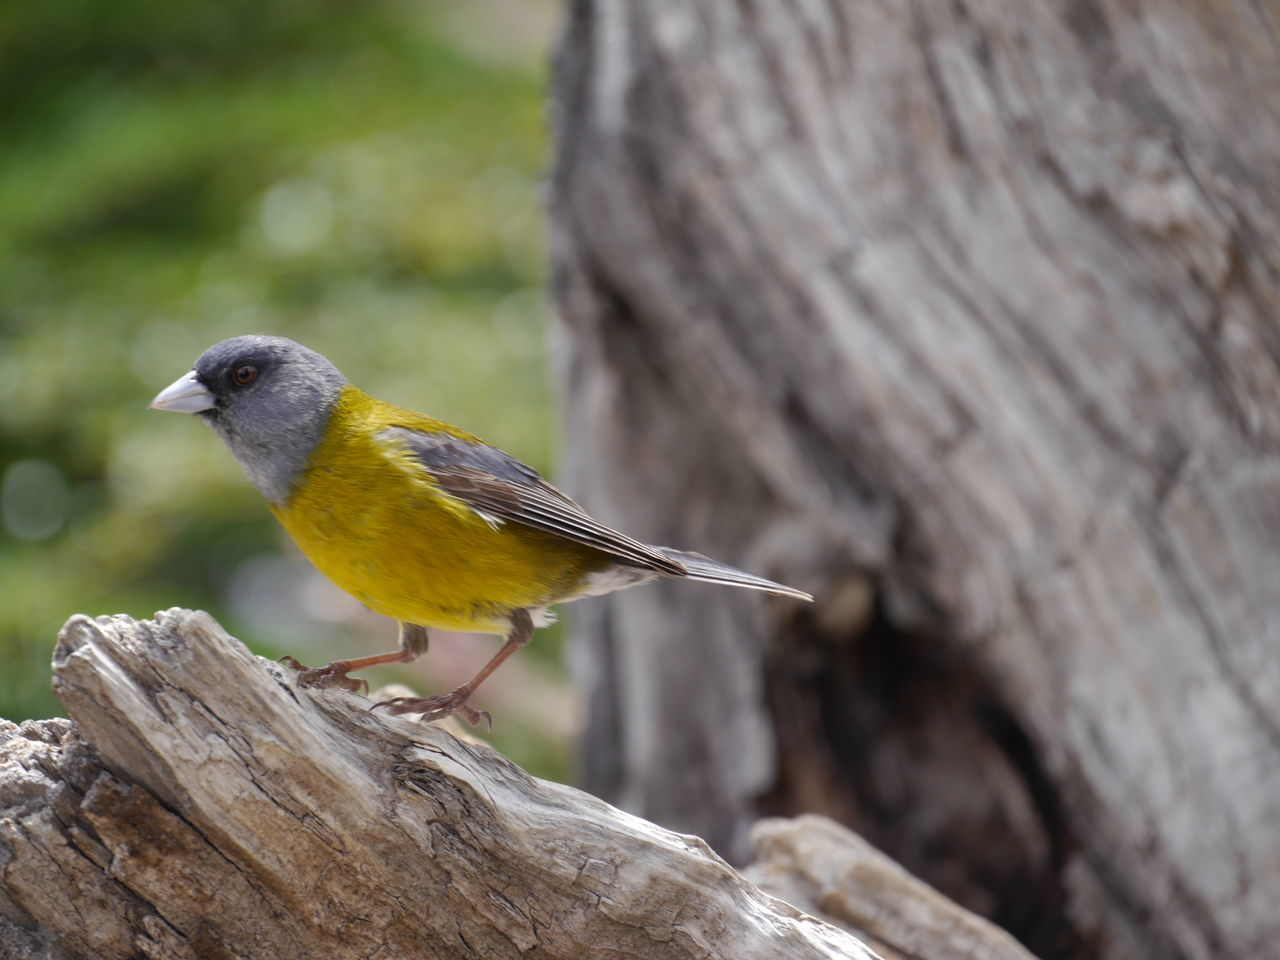 Little bird in el Chalten Animal Photography Animals In The Wild Bird Bird On A Trunk Birdy Closeup El Chalten Fauna Of Patagonia Outdoors Patagonia Nature Yellow Bird